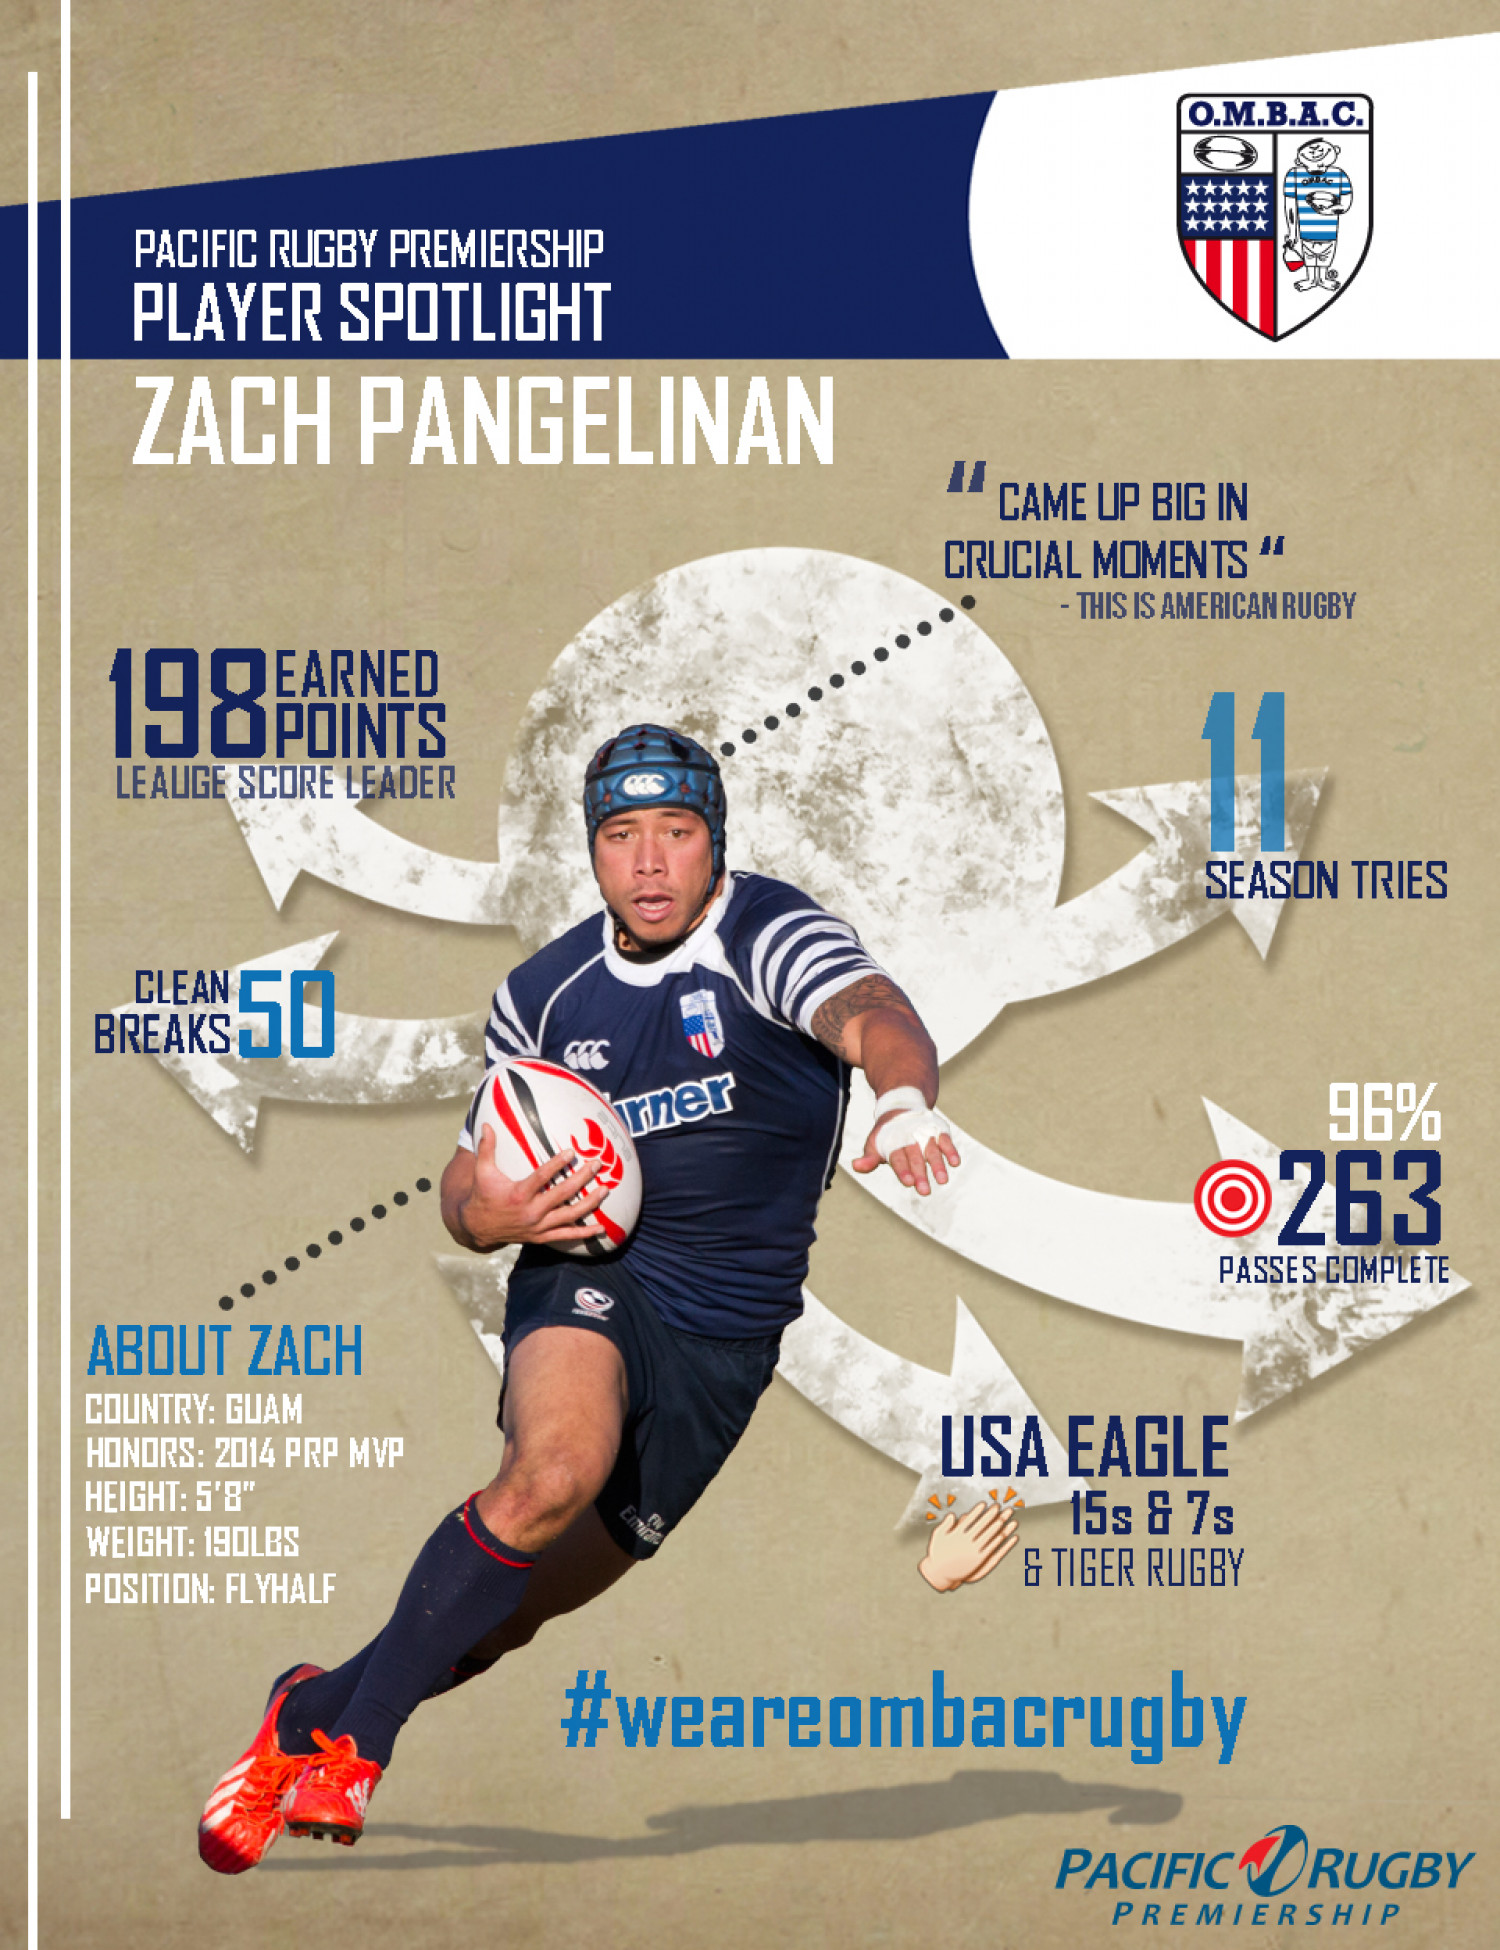 Pacific Rugby Premiership 2015 Season Campaign Infographic